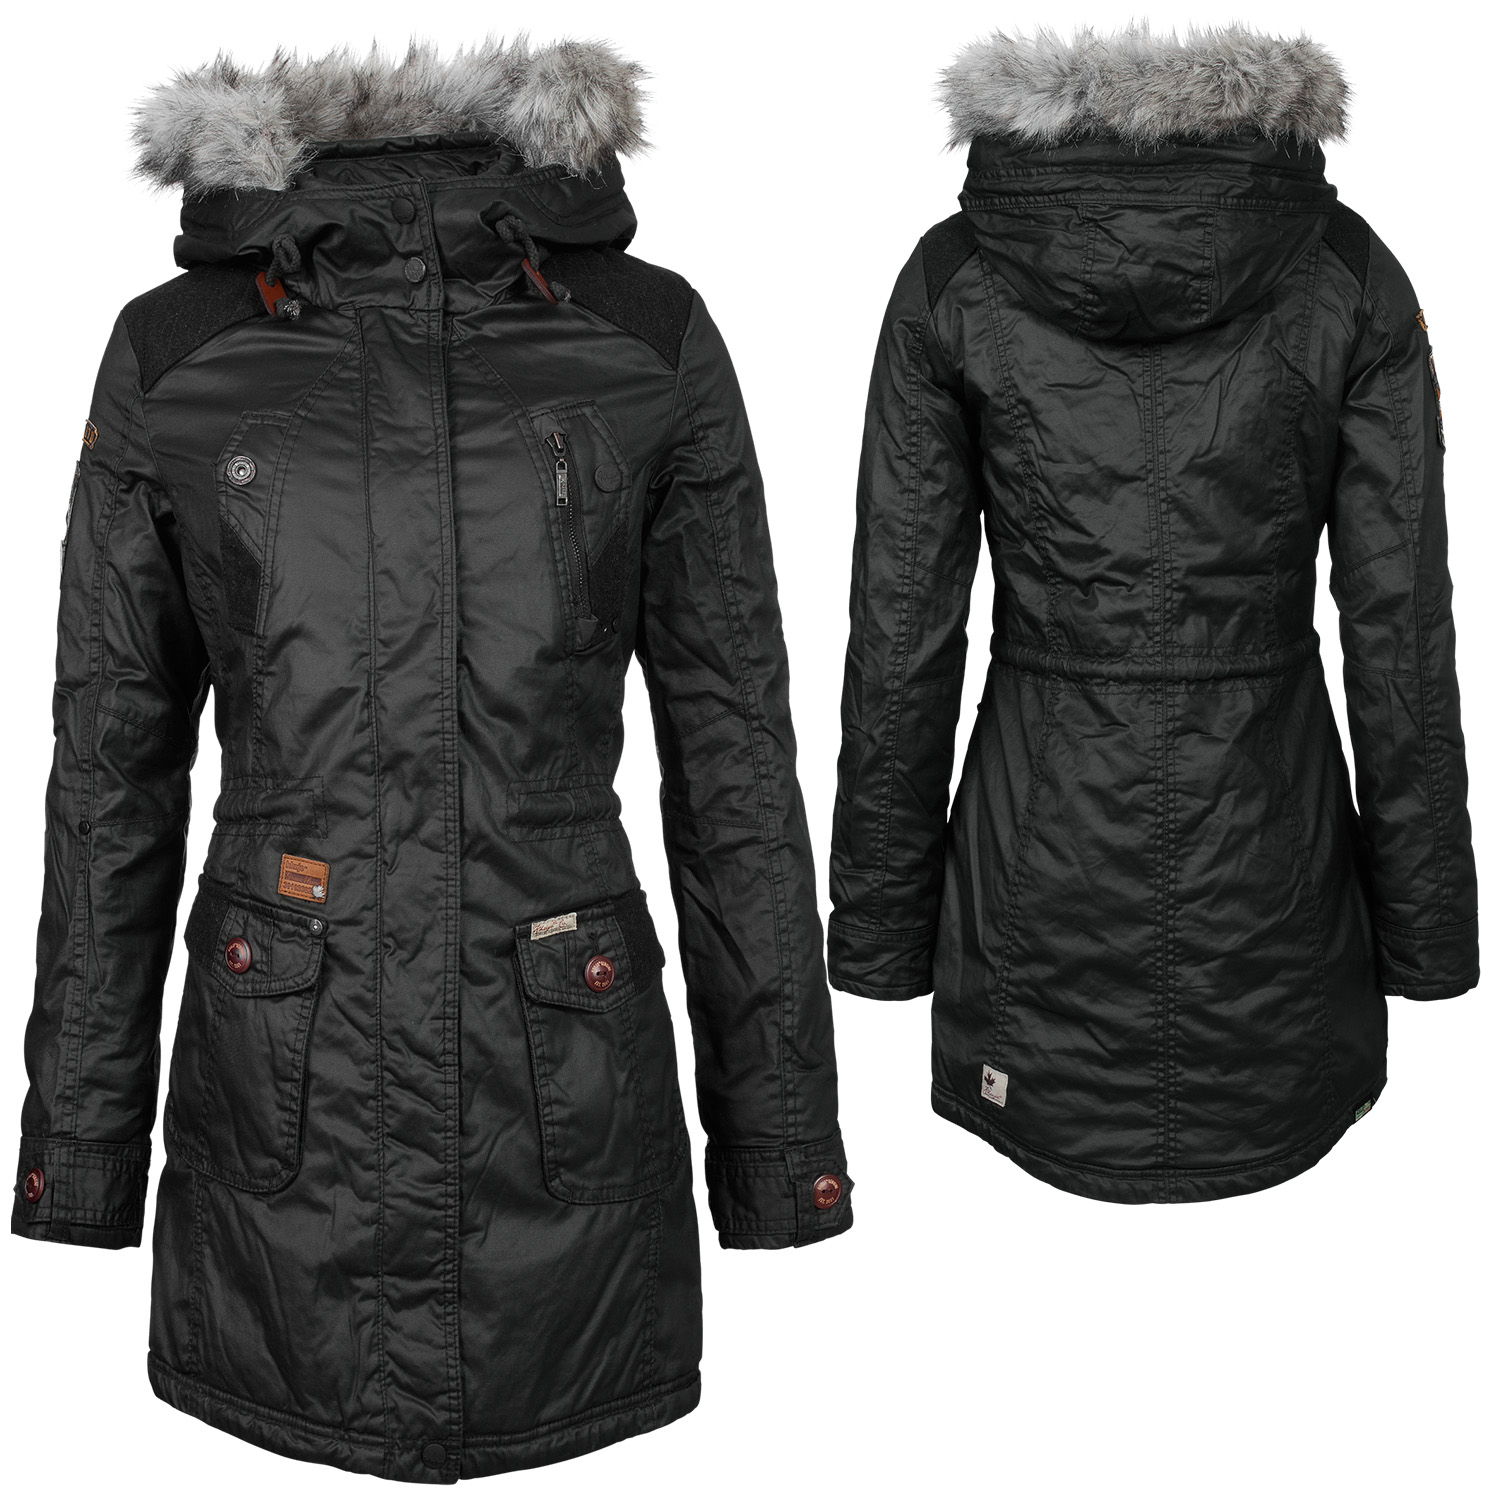 khujo damen winter mantel jacke giuletta plain wintermantel winterjacke ebay. Black Bedroom Furniture Sets. Home Design Ideas